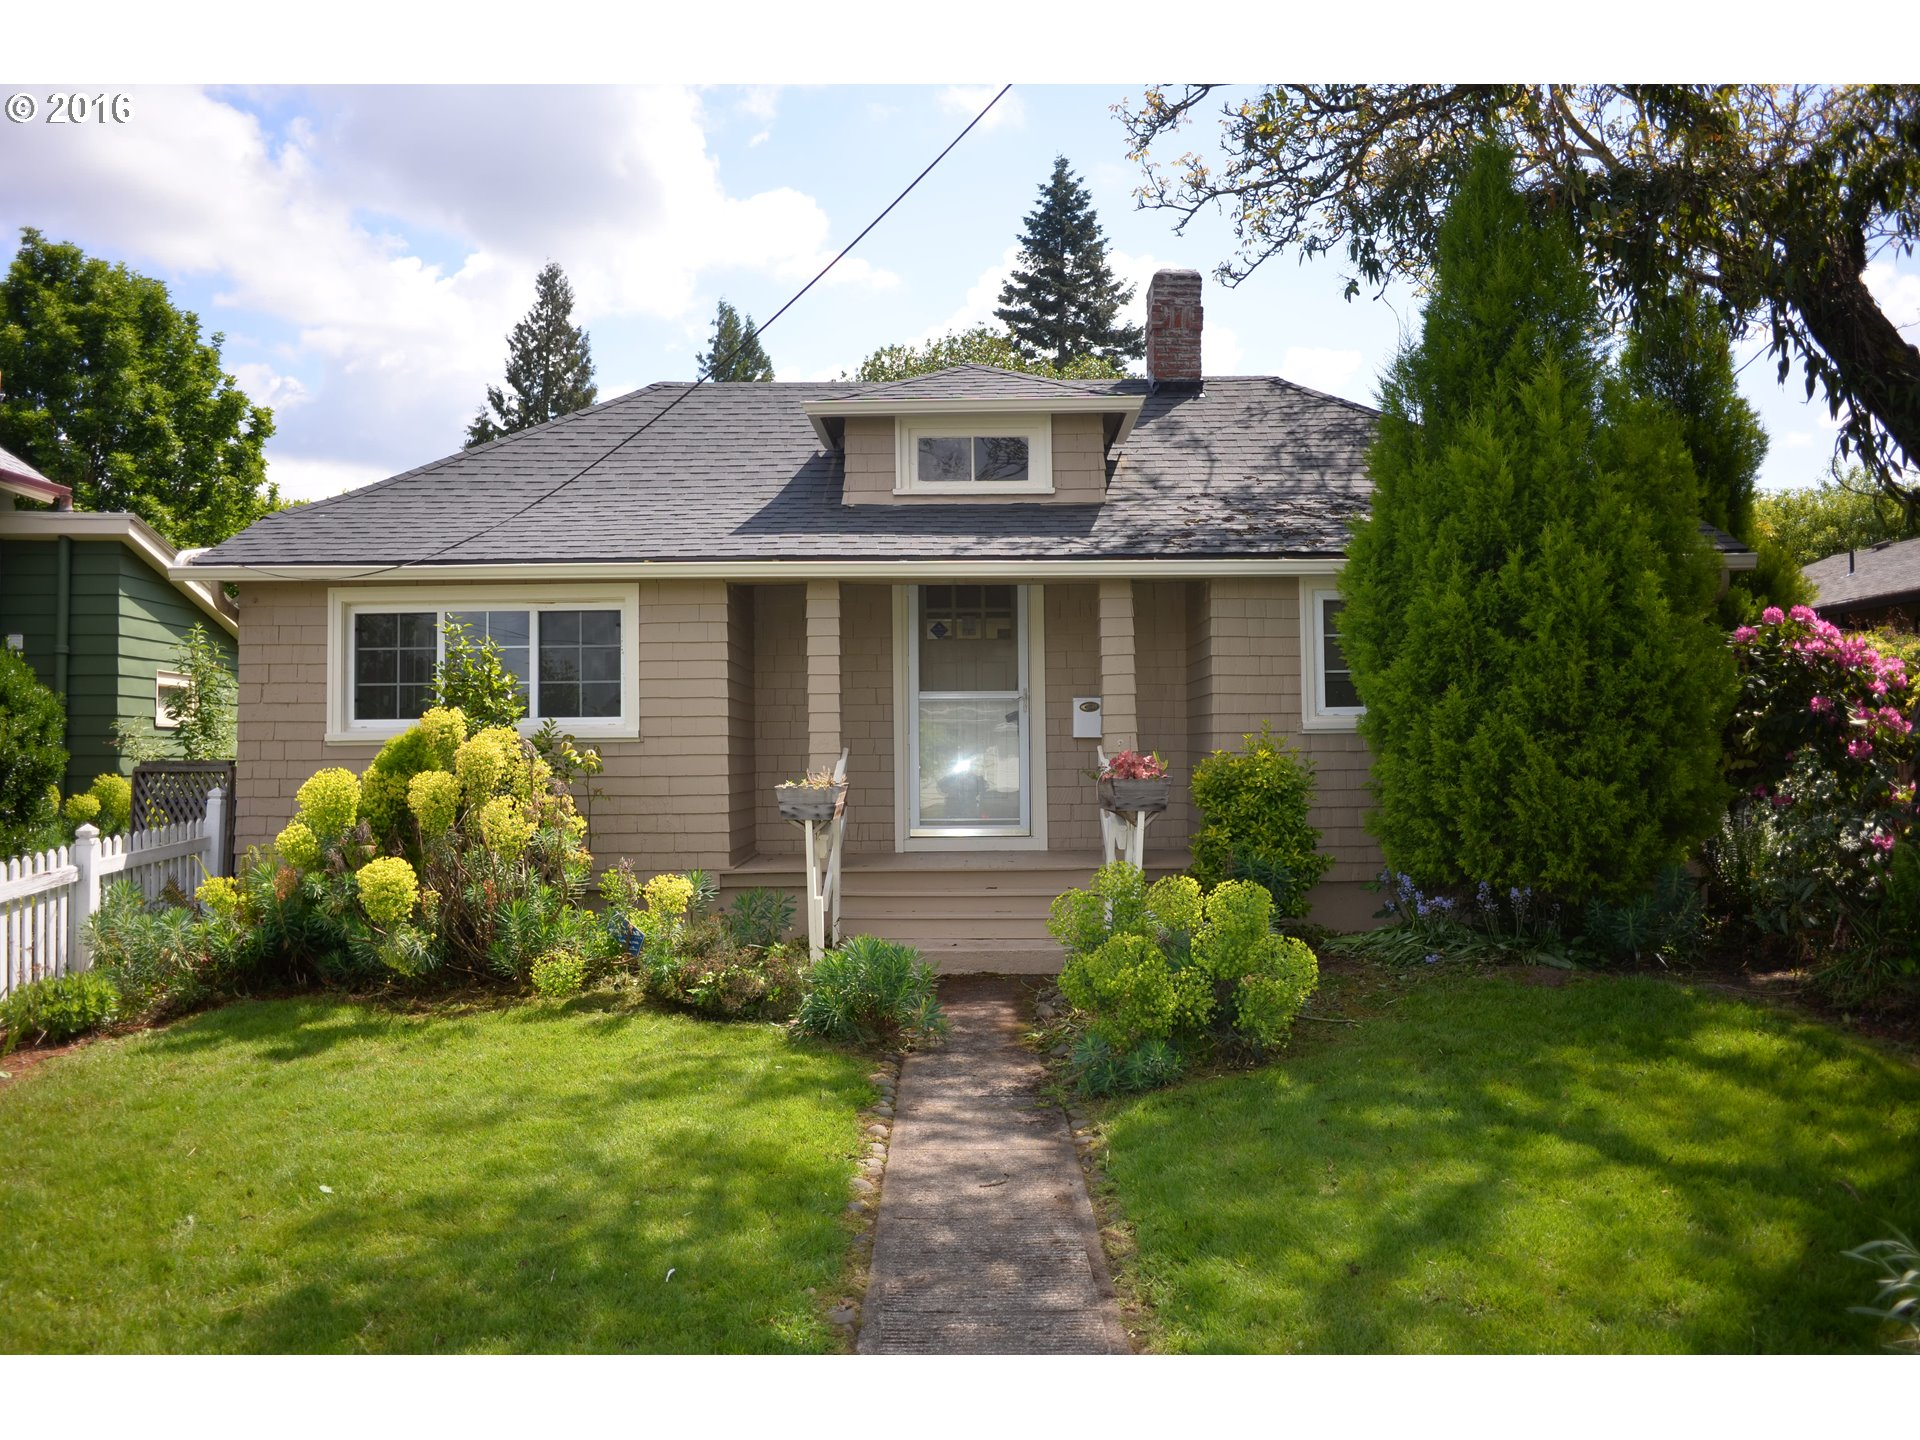 1202 sq. ft 2 bedrooms 1 bathrooms  House ,Portland, OR